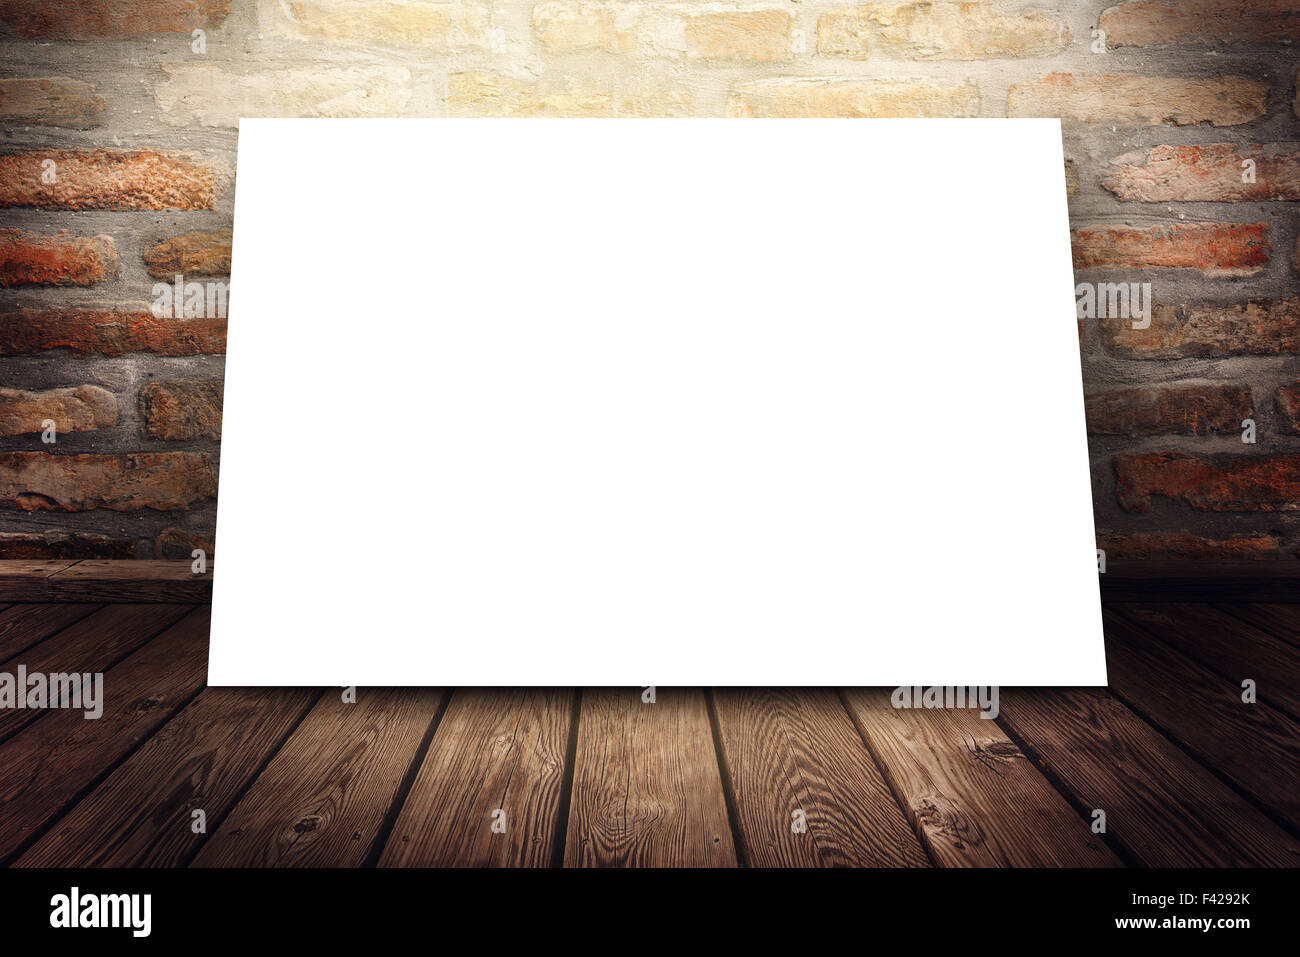 Blank poster mock up as copy space under gallery spotlight, graphic design background - Stock Image